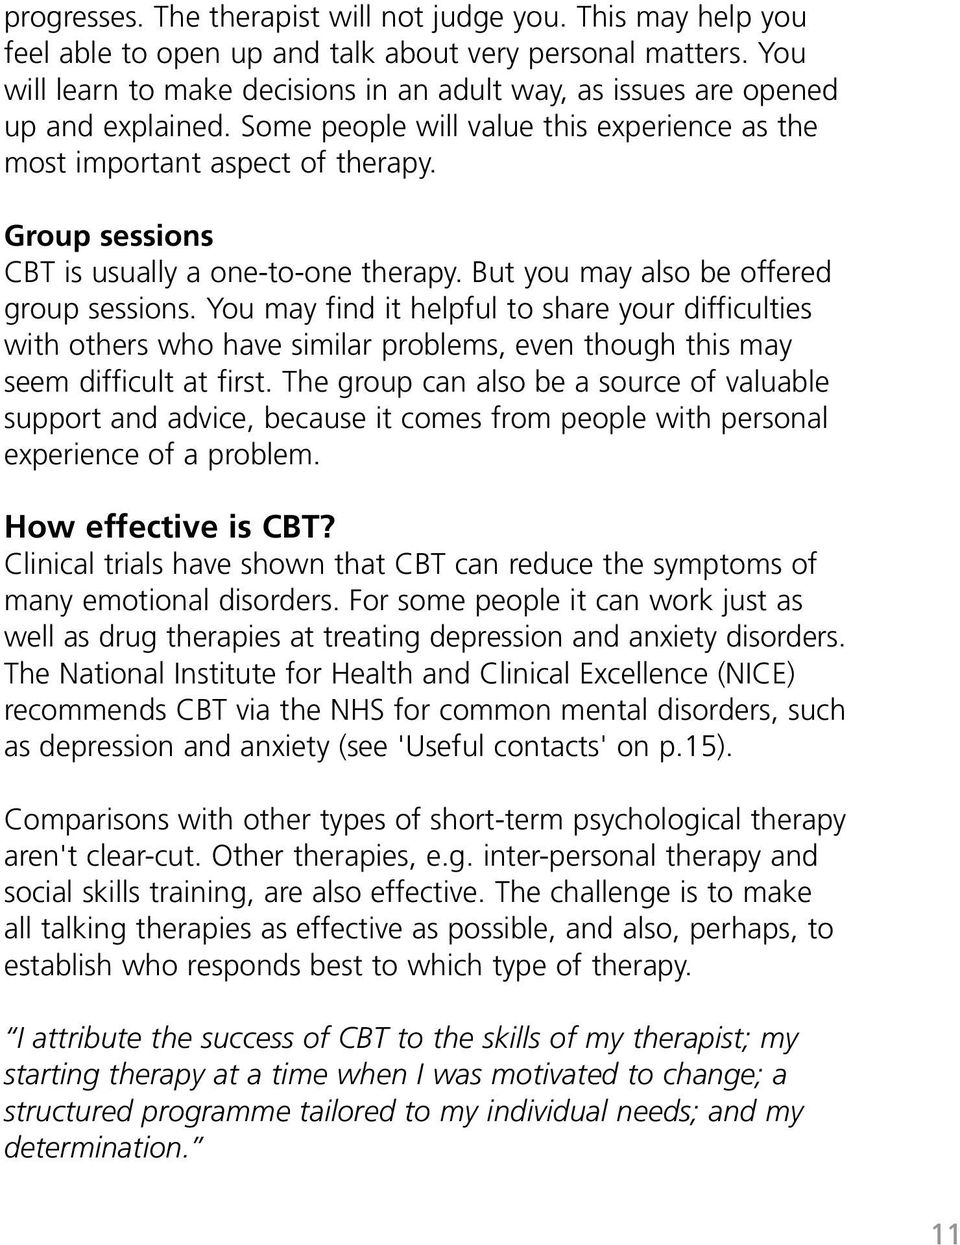 Group sessions CBT is usually a one-to-one therapy. But you may also be offered group sessions.